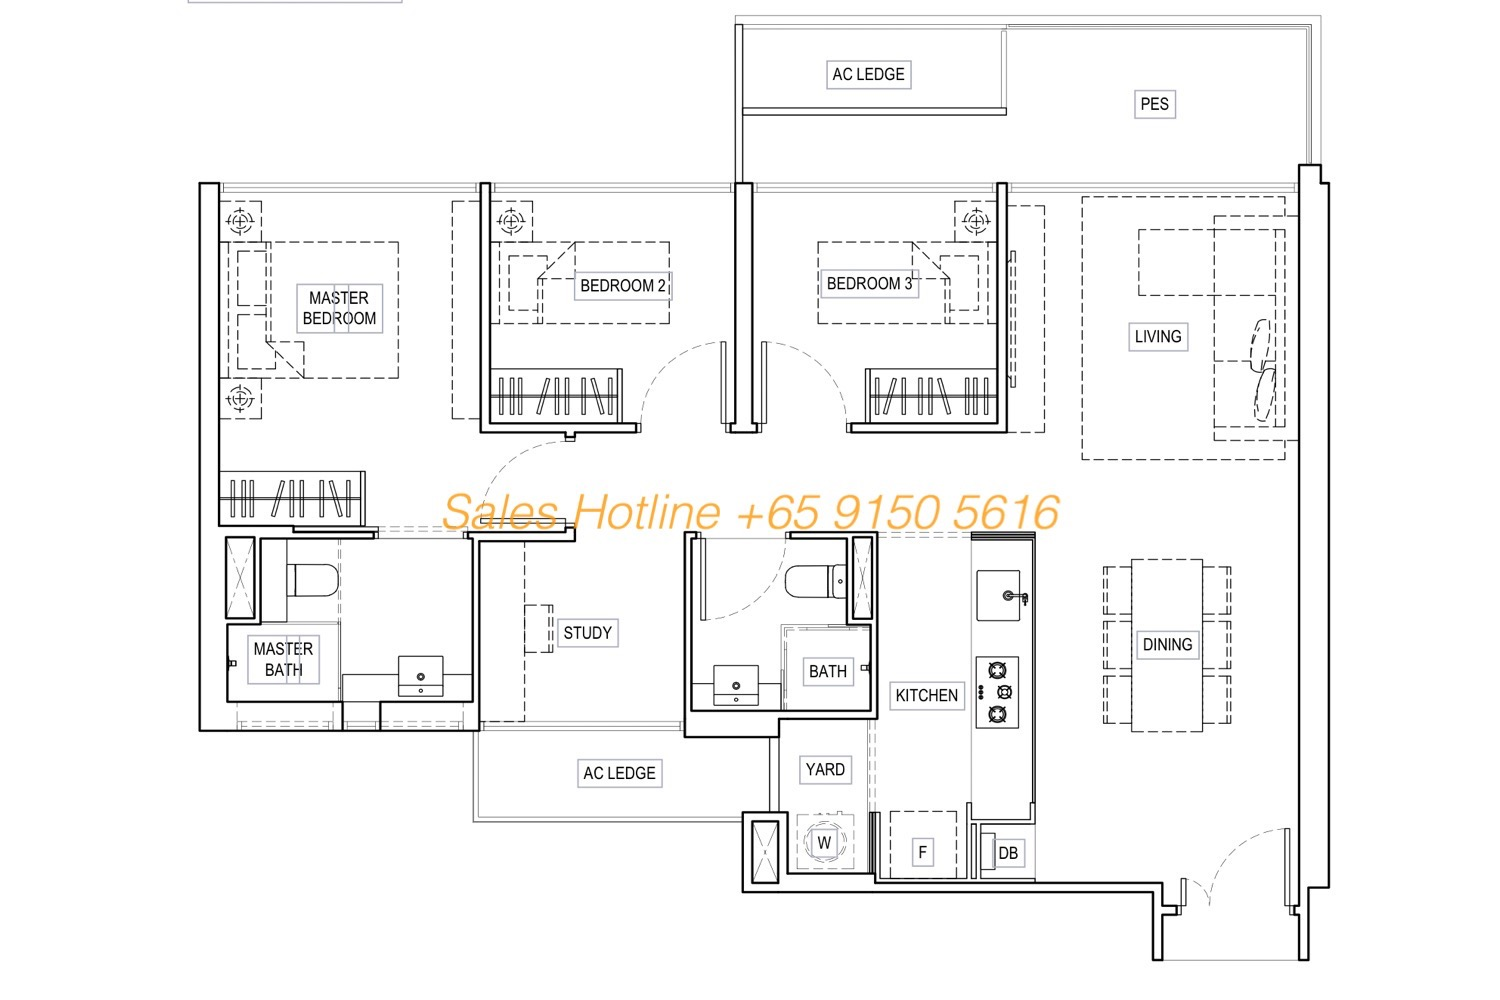 Kandies Residences - Showflat Layout Type C3SG 3 Bedroom + Study